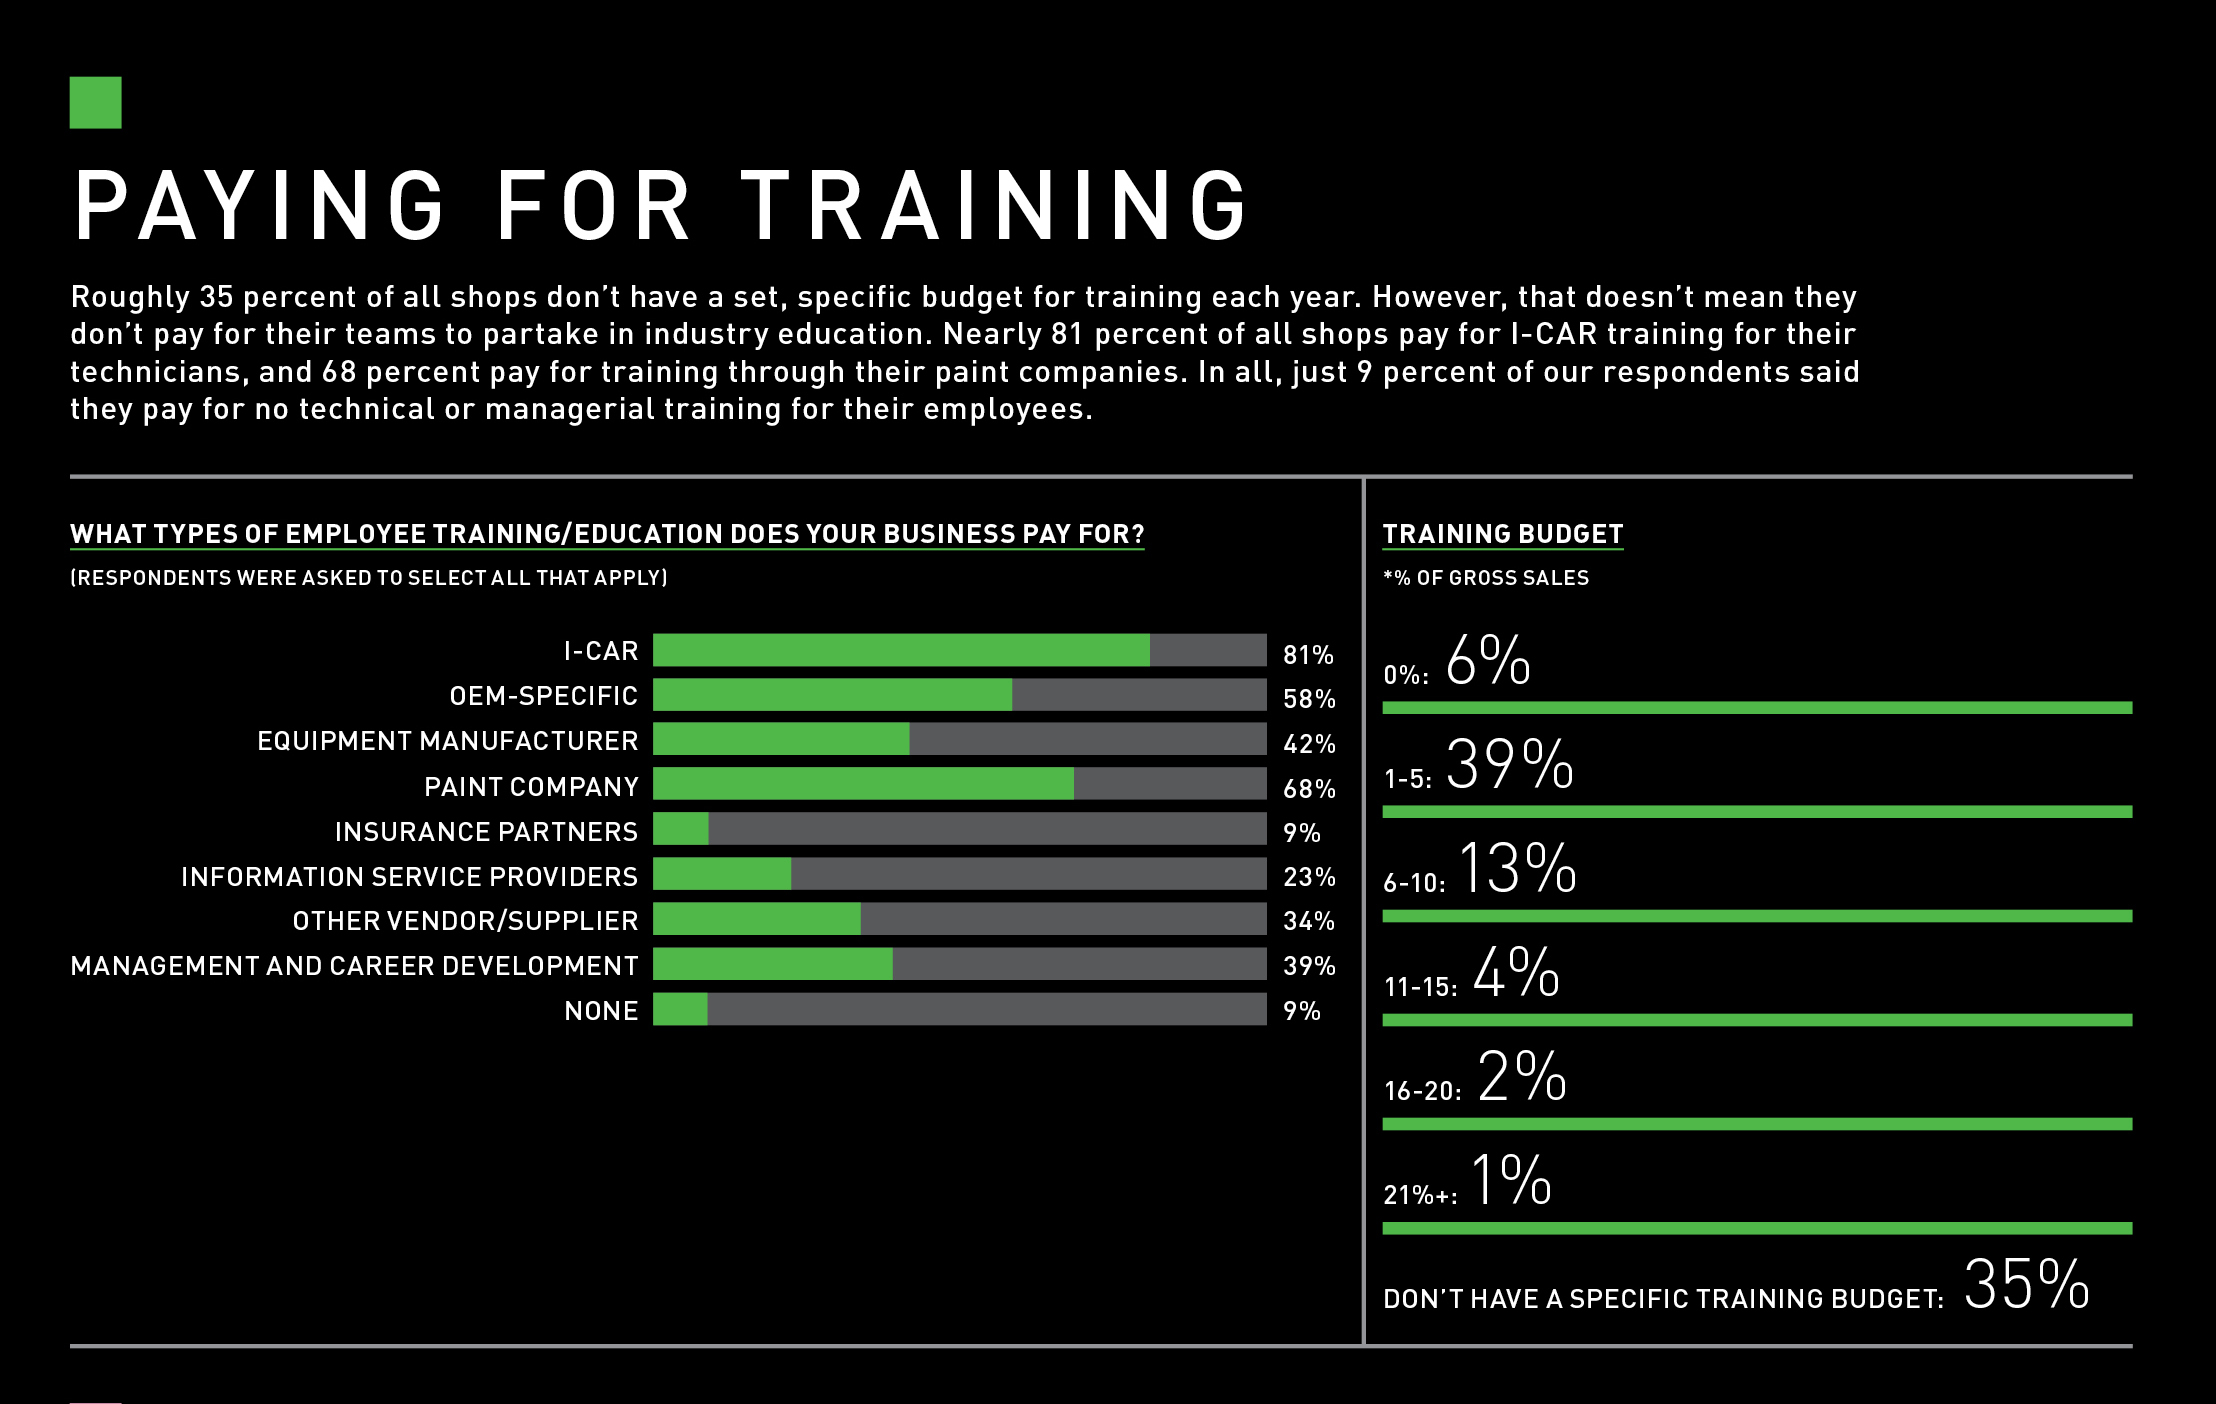 Paying for Training